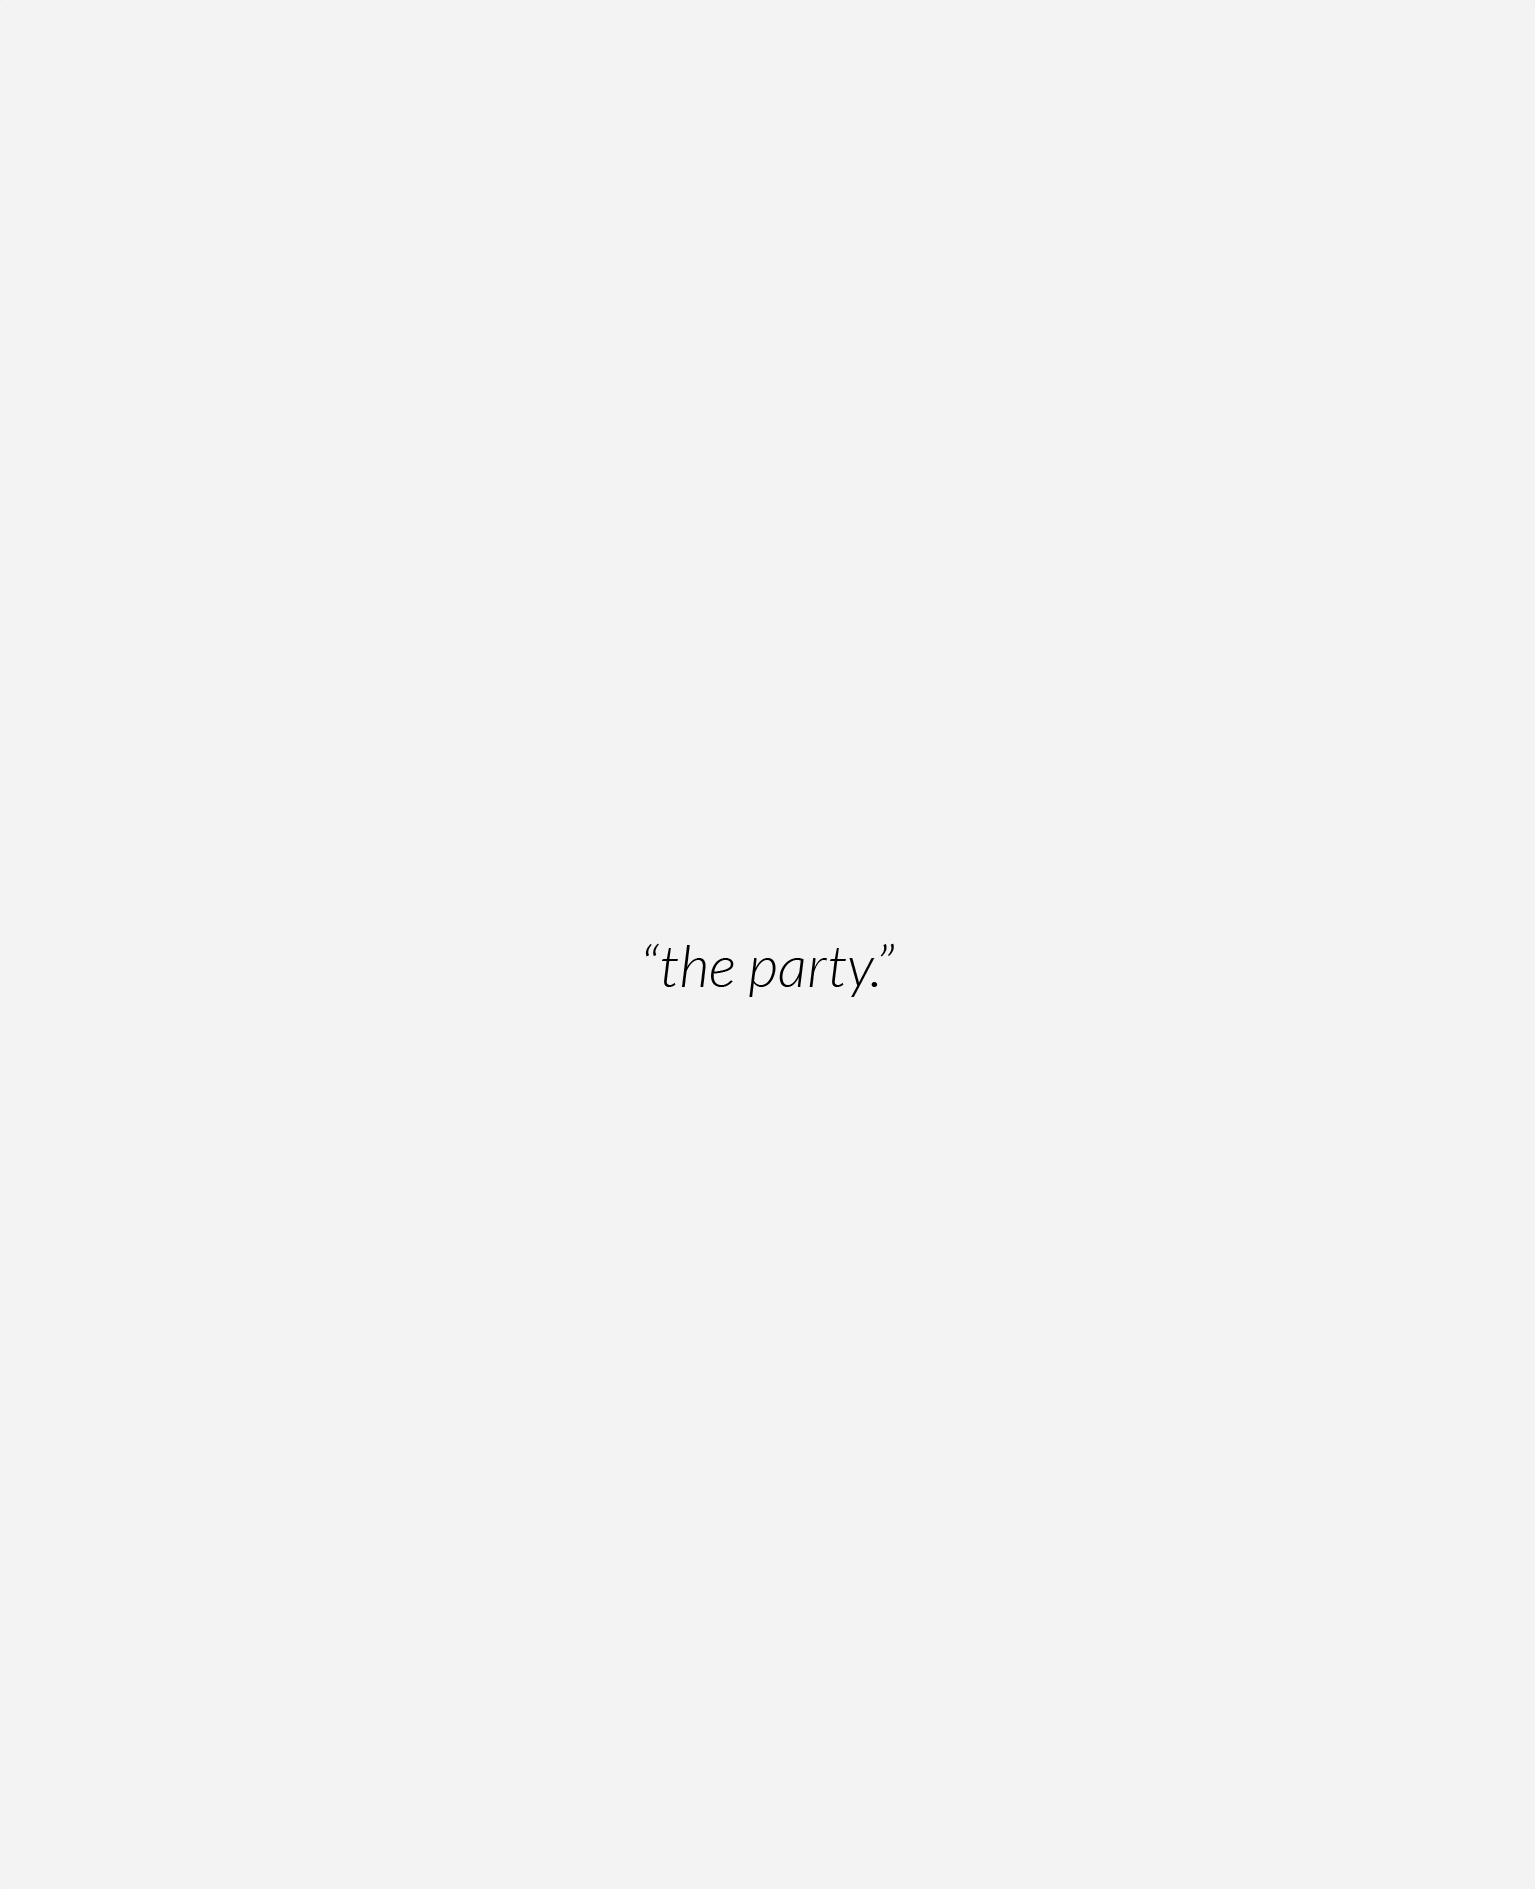 """A blank page, with nothing but the words """"the party."""" written in an italicized font."""